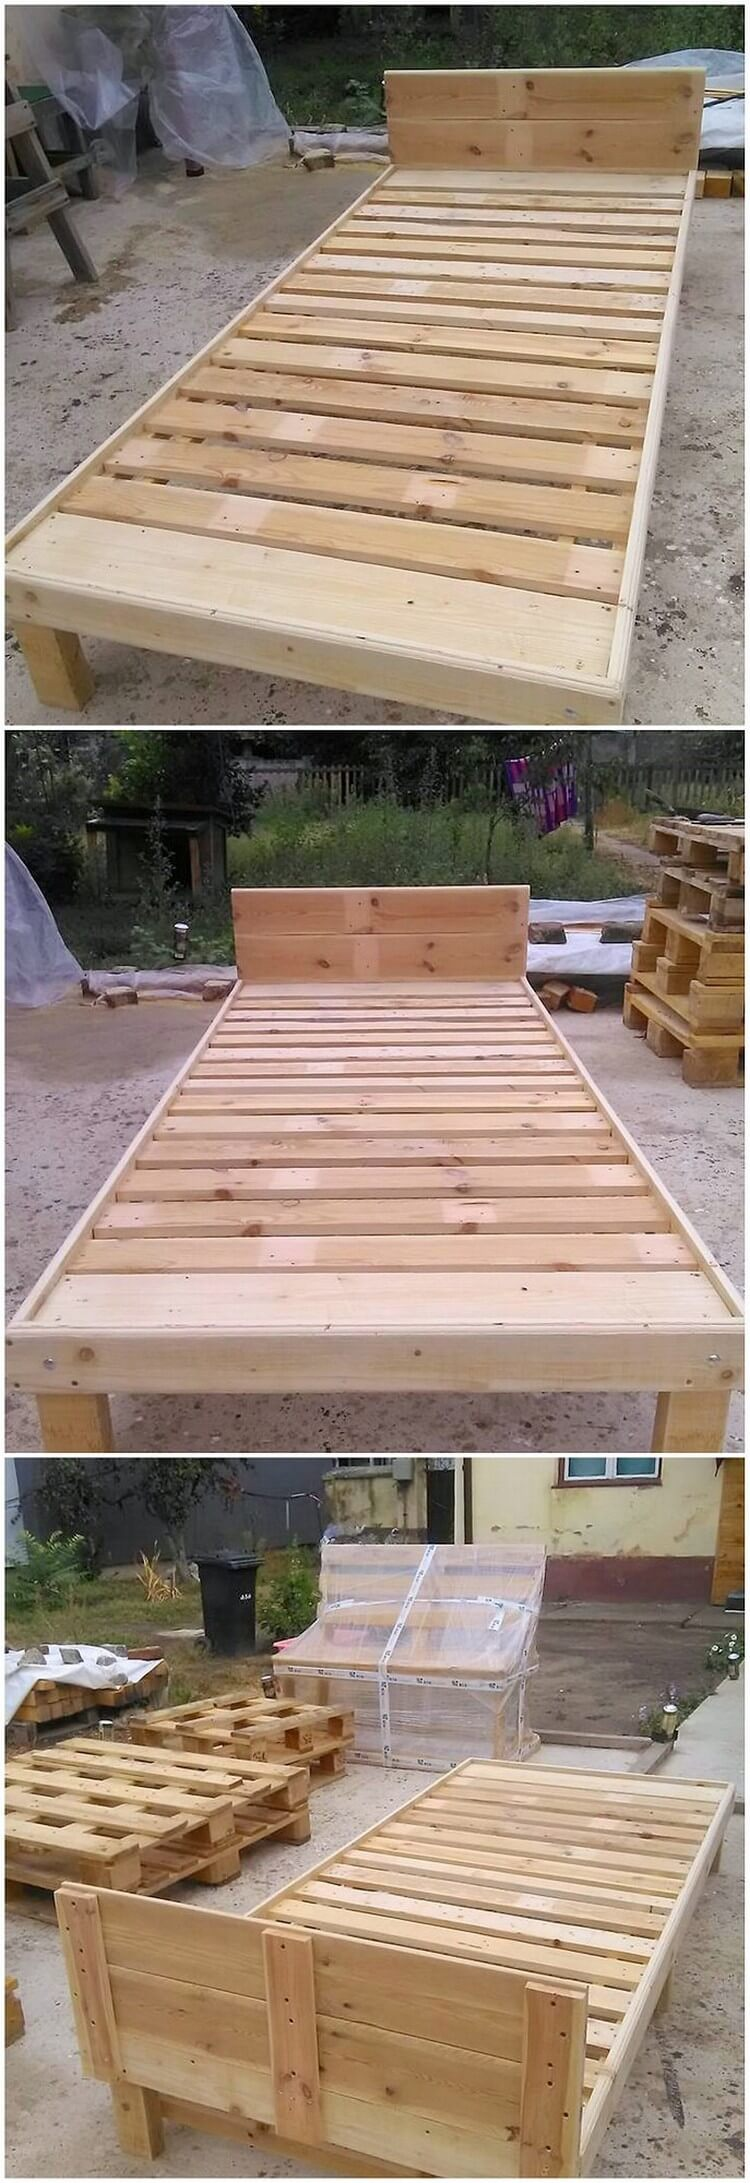 Awesome diy wooden pallet ideas that can improve your home for Recycled pallet bed frame